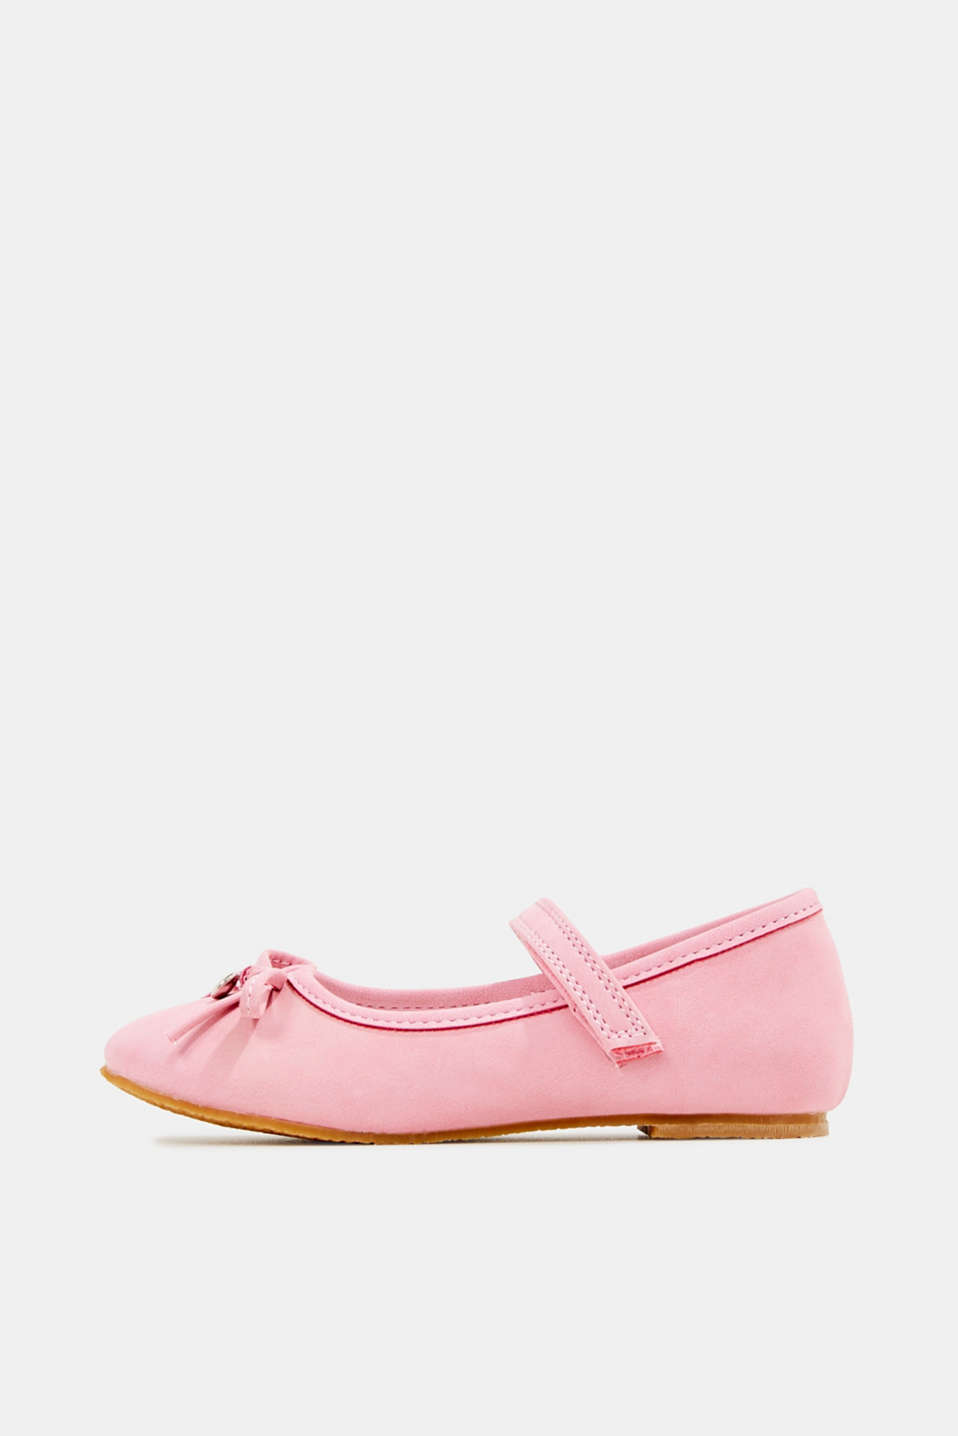 Esprit - Ballerinas with Velcro straps, in faux leather